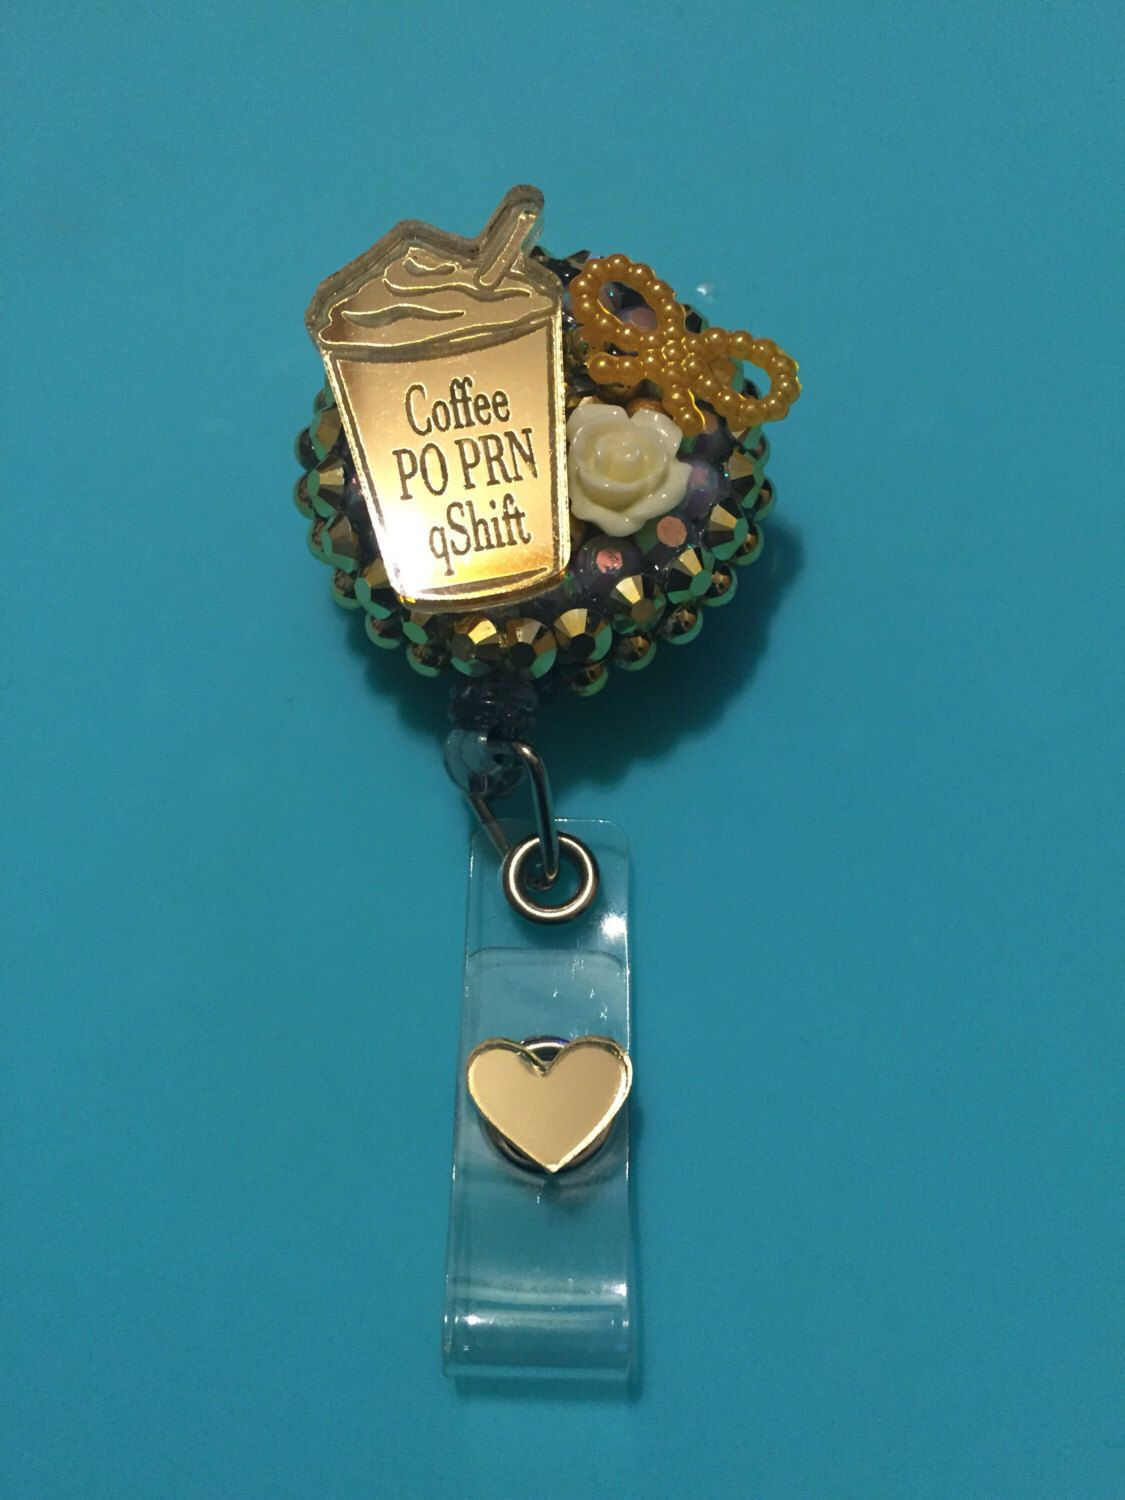 "Coffee Lovers! GOLD ID holder   Hand-Blinged, Hand Crafted &  Uniquely Designed Reads ""COFFEE PO PRN QSHIFT"""